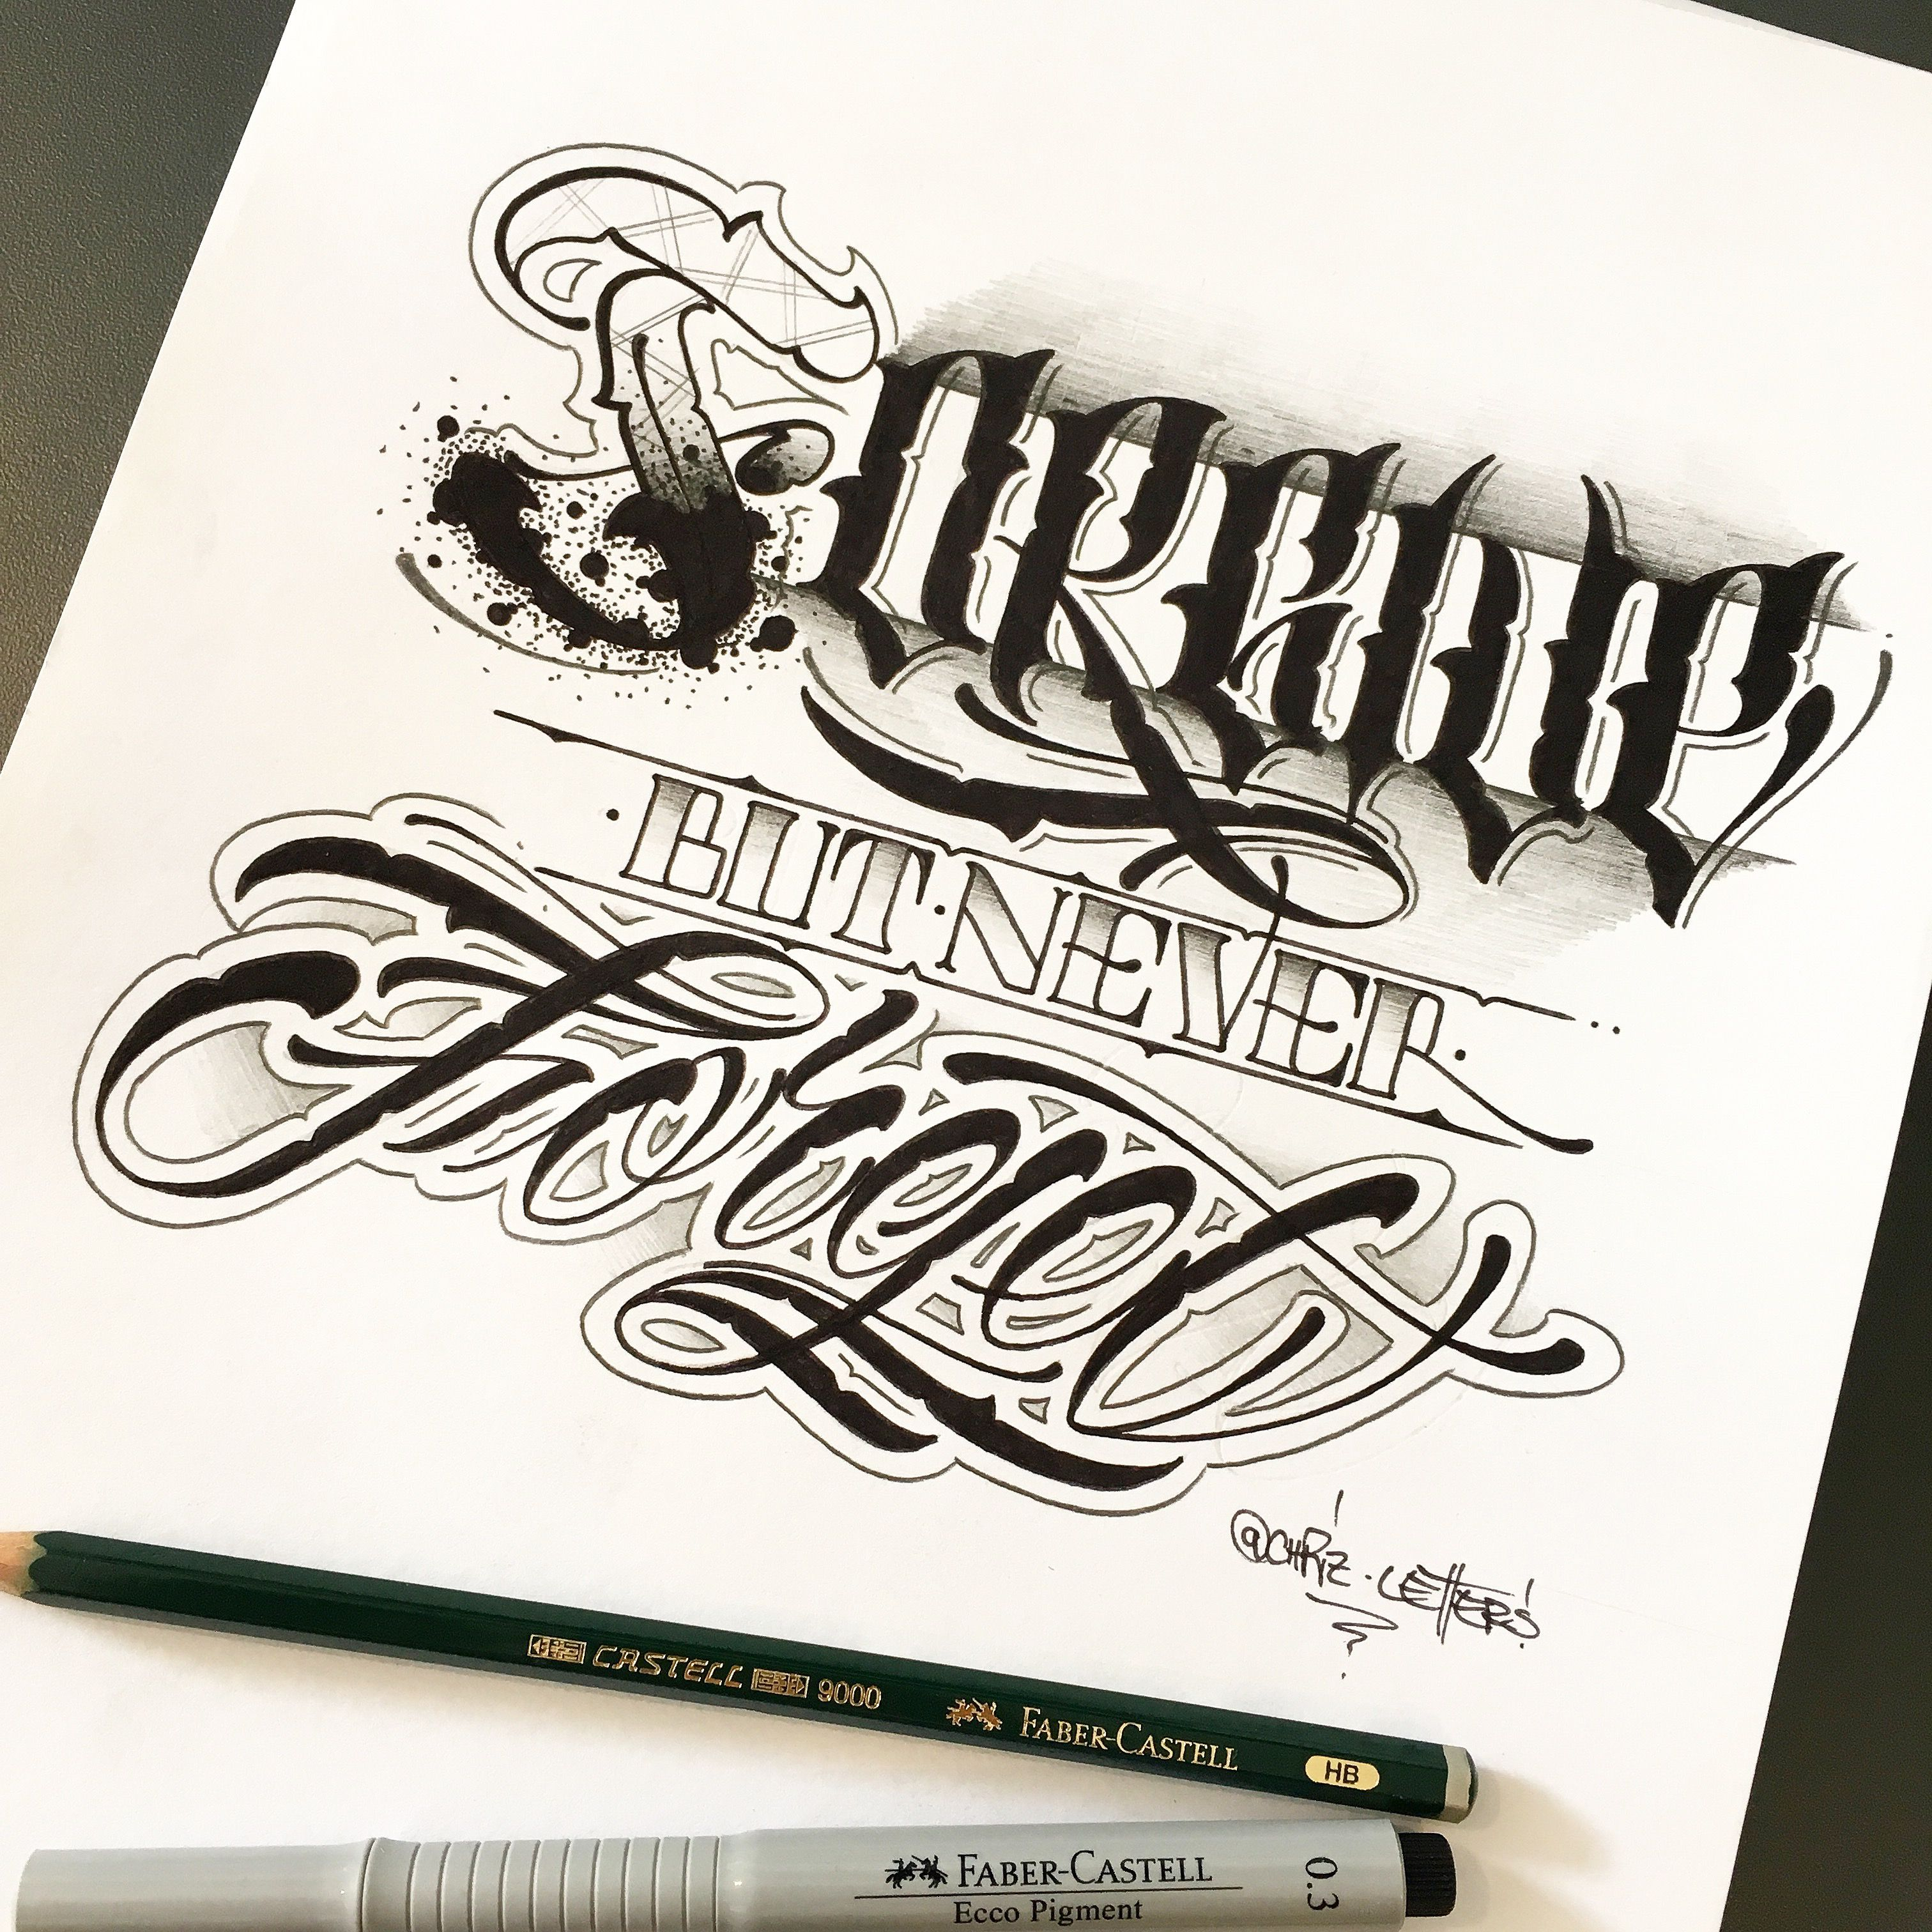 100 Tattoo Lettering Designs For Your Body Art: Forgive But Never Forget